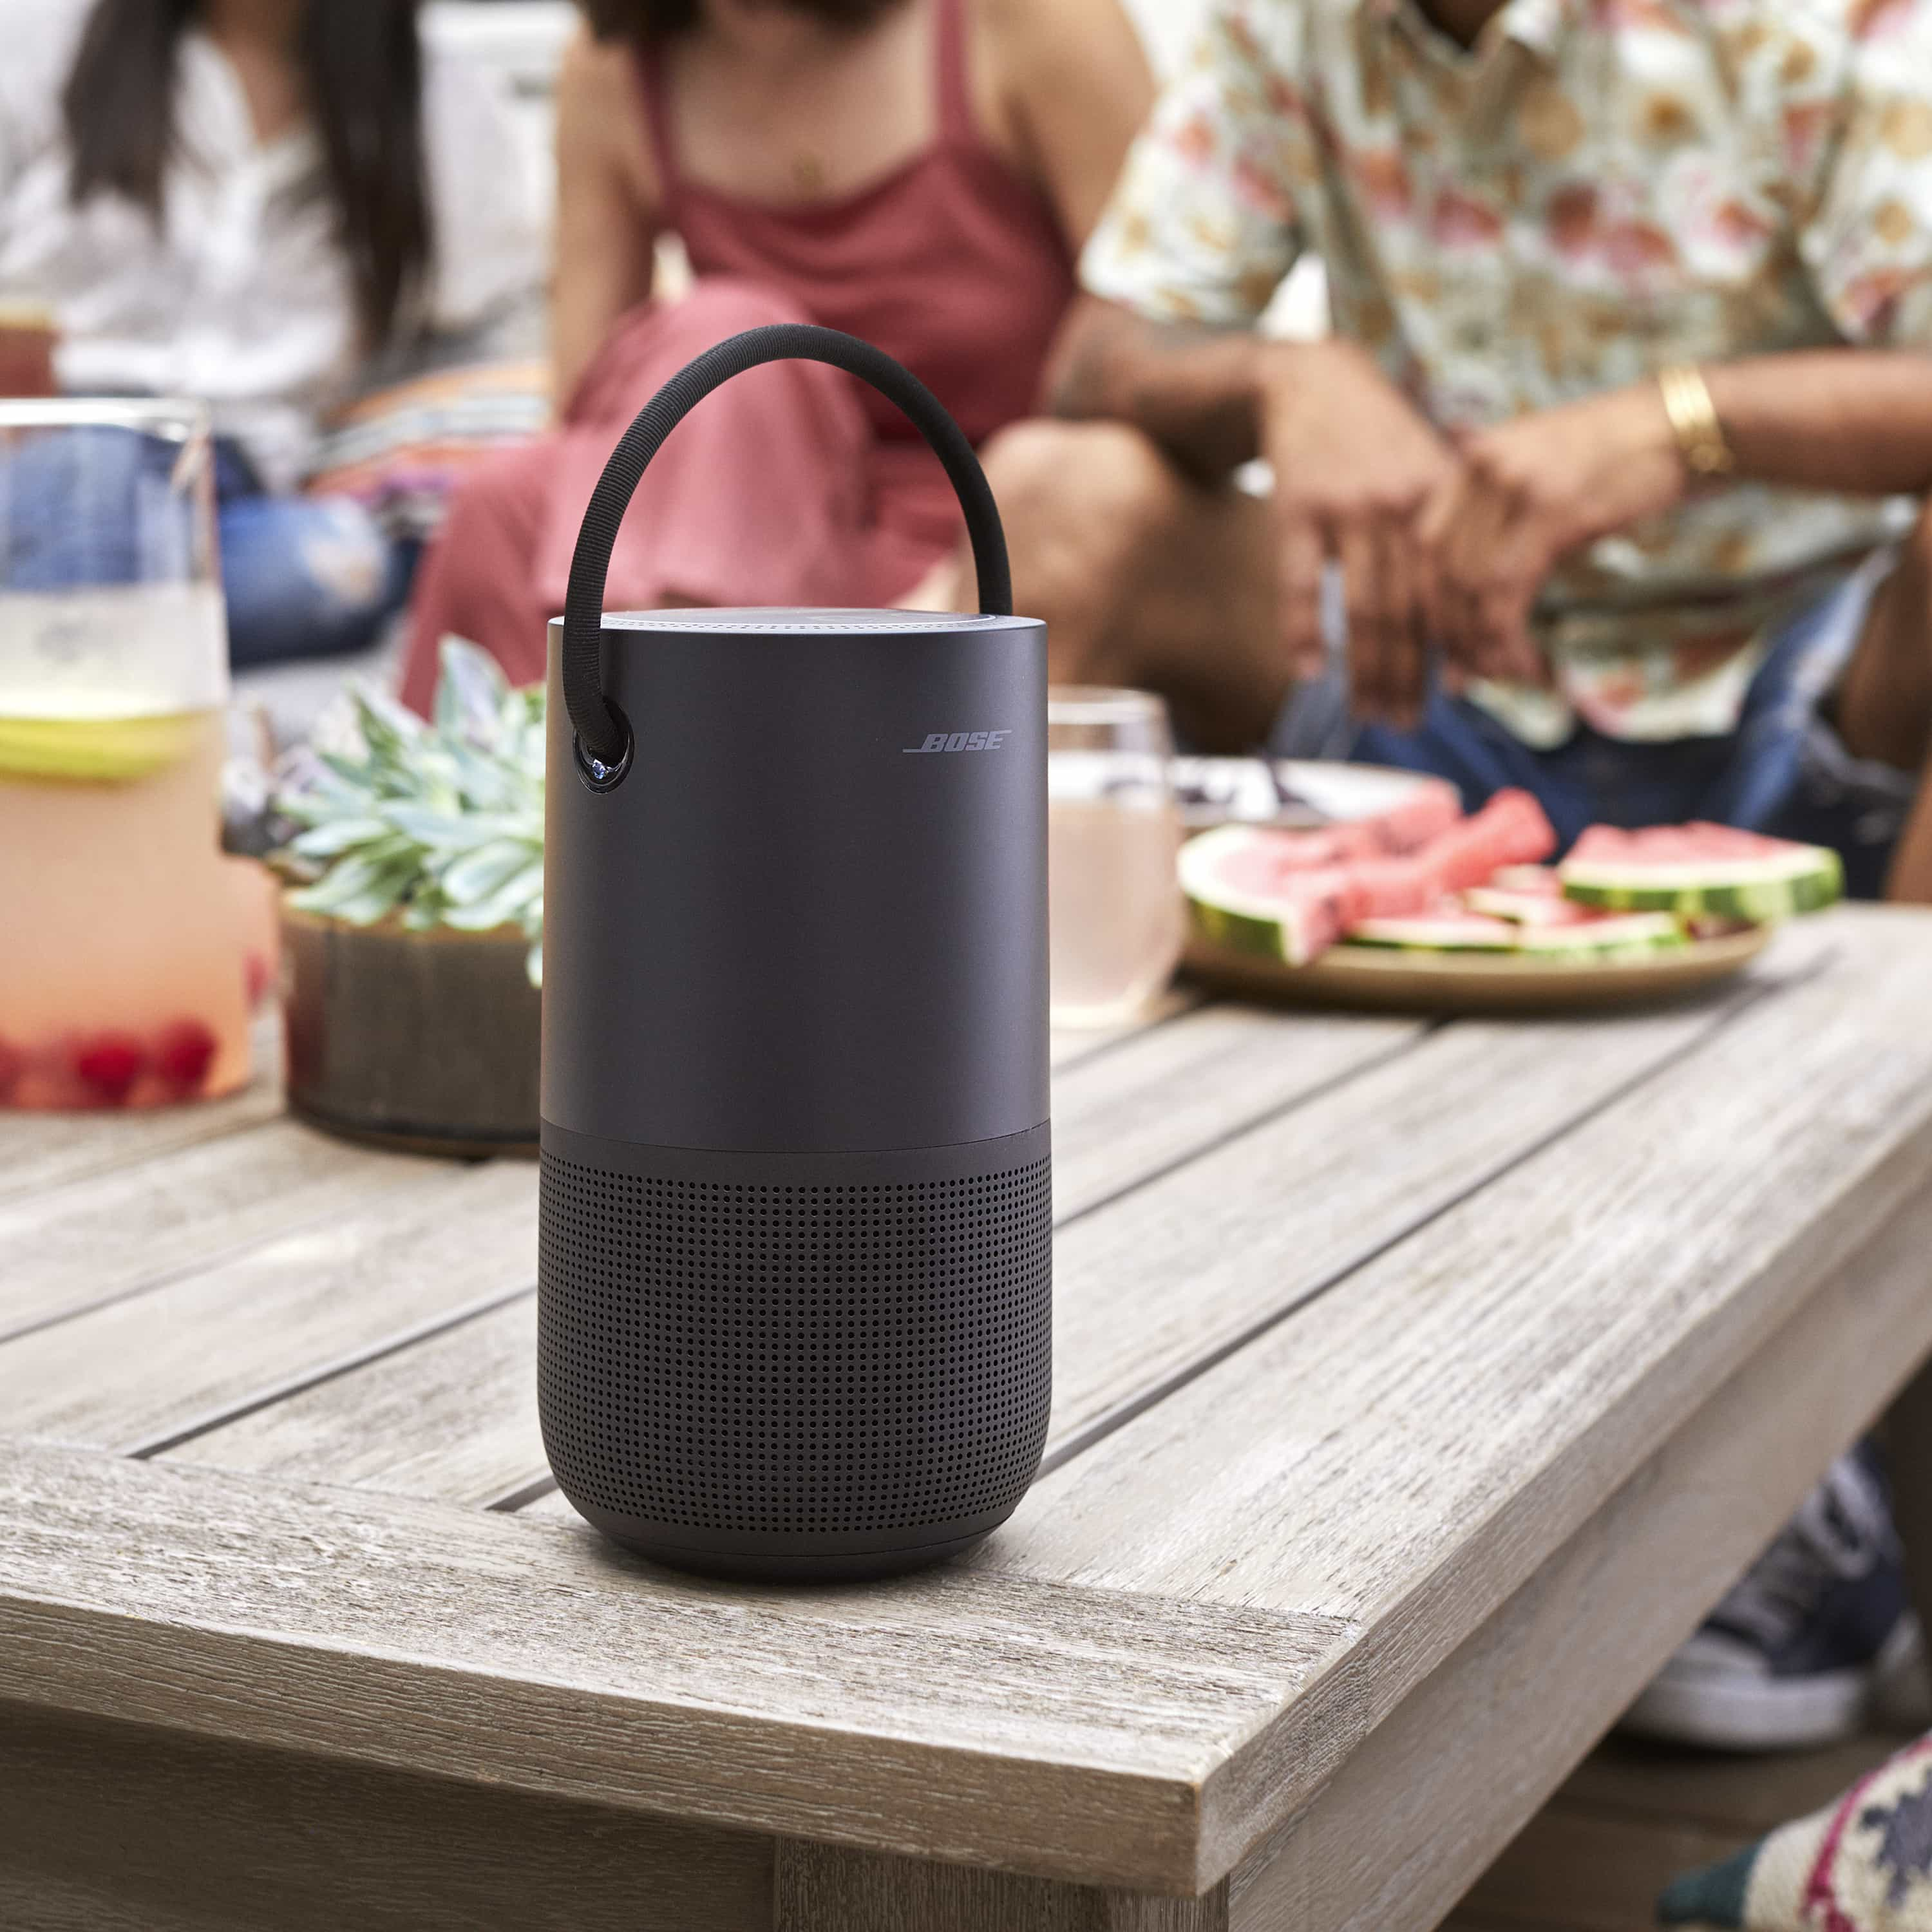 Bose releases new, portable speaker, named Bose Portable Home Speaker